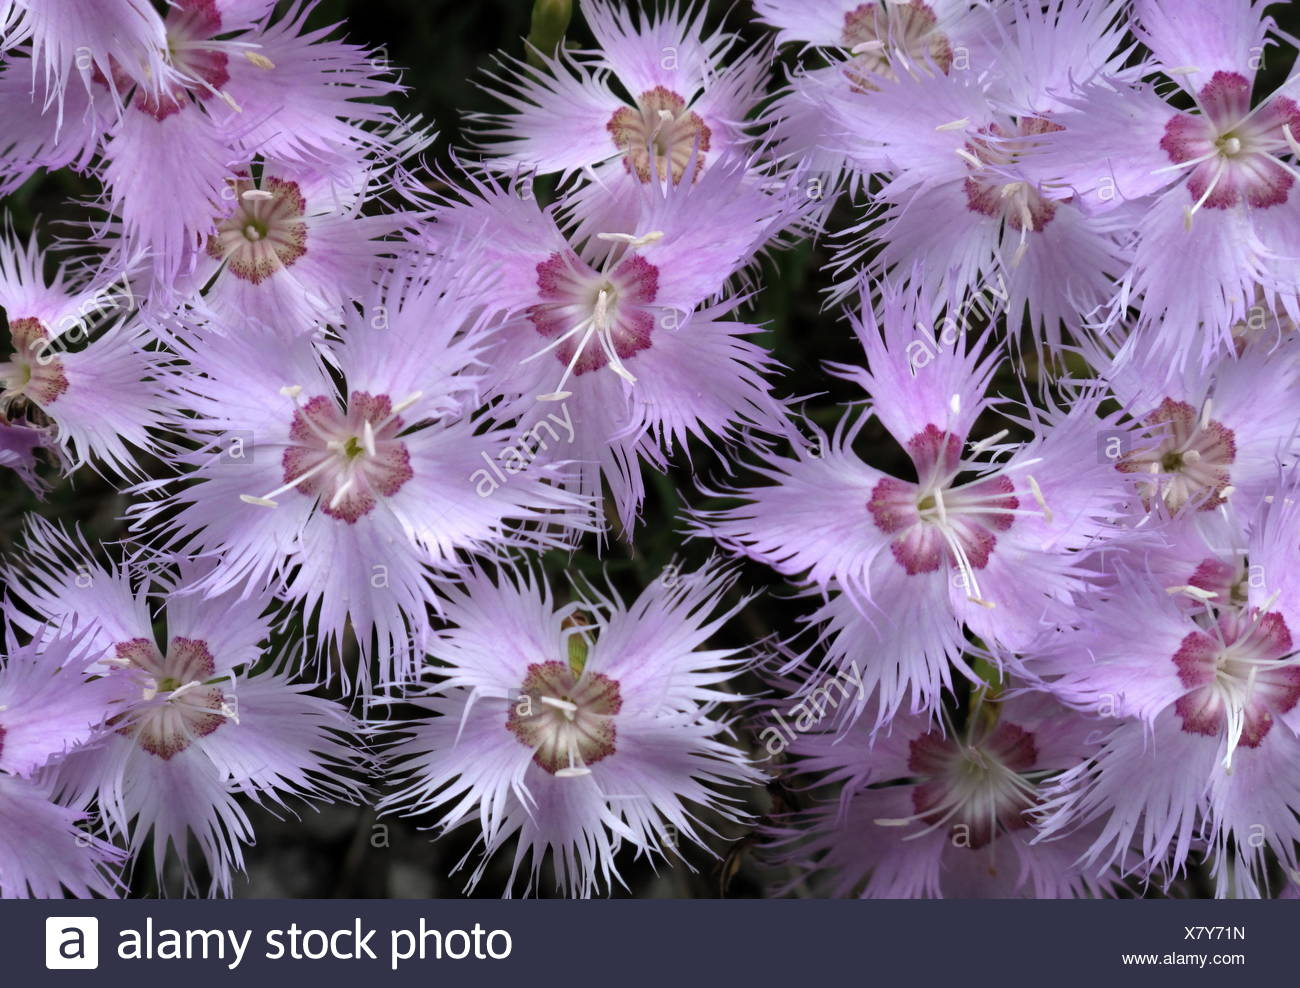 feather cloves - Stock Image